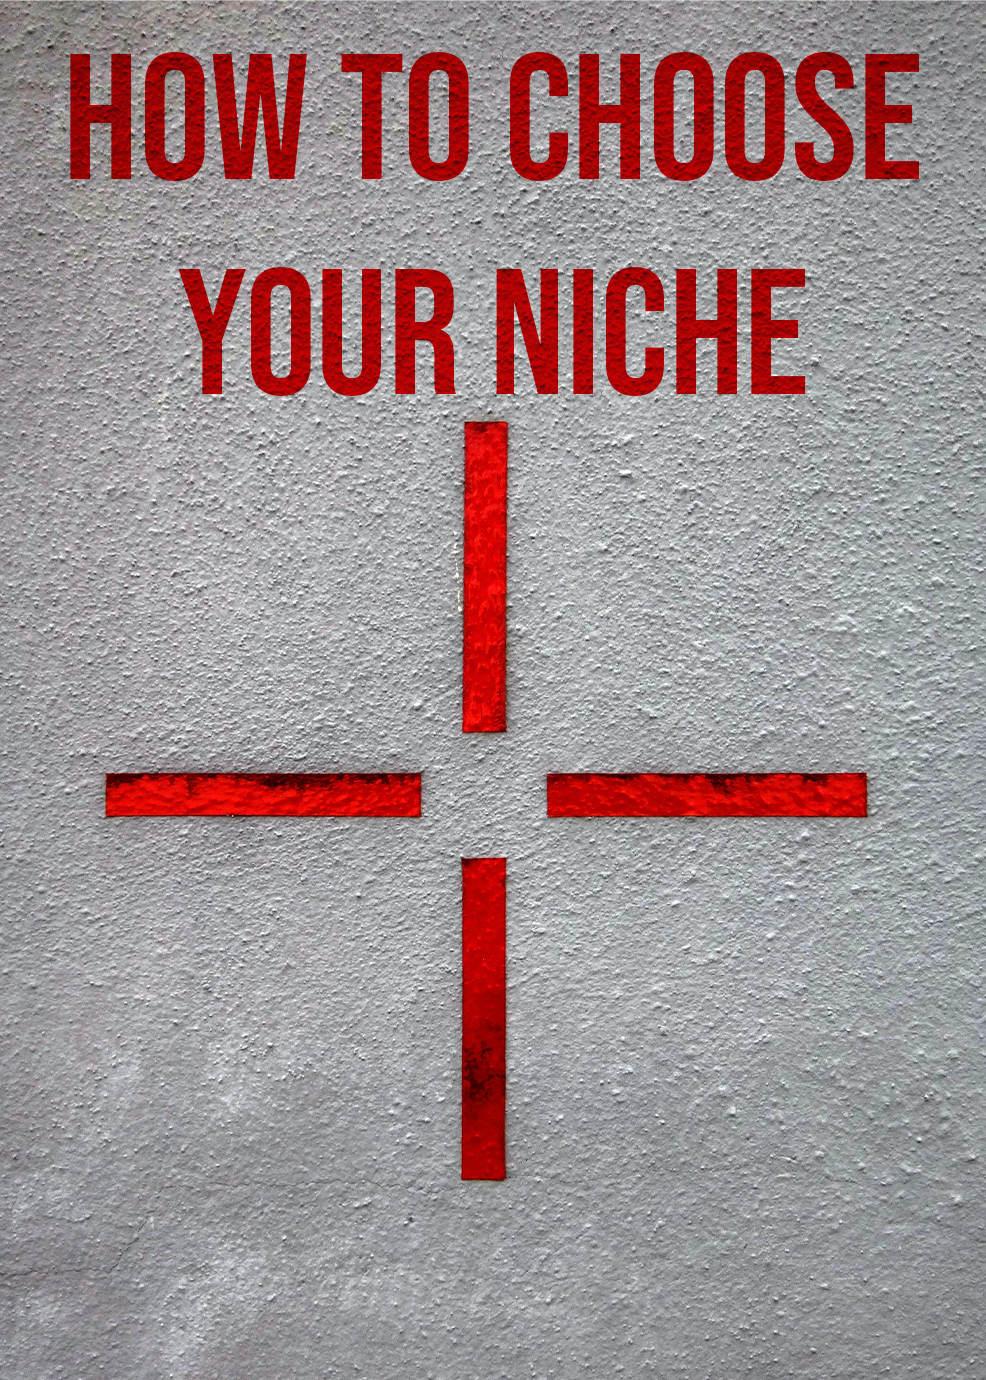 How to Choose Your Niche